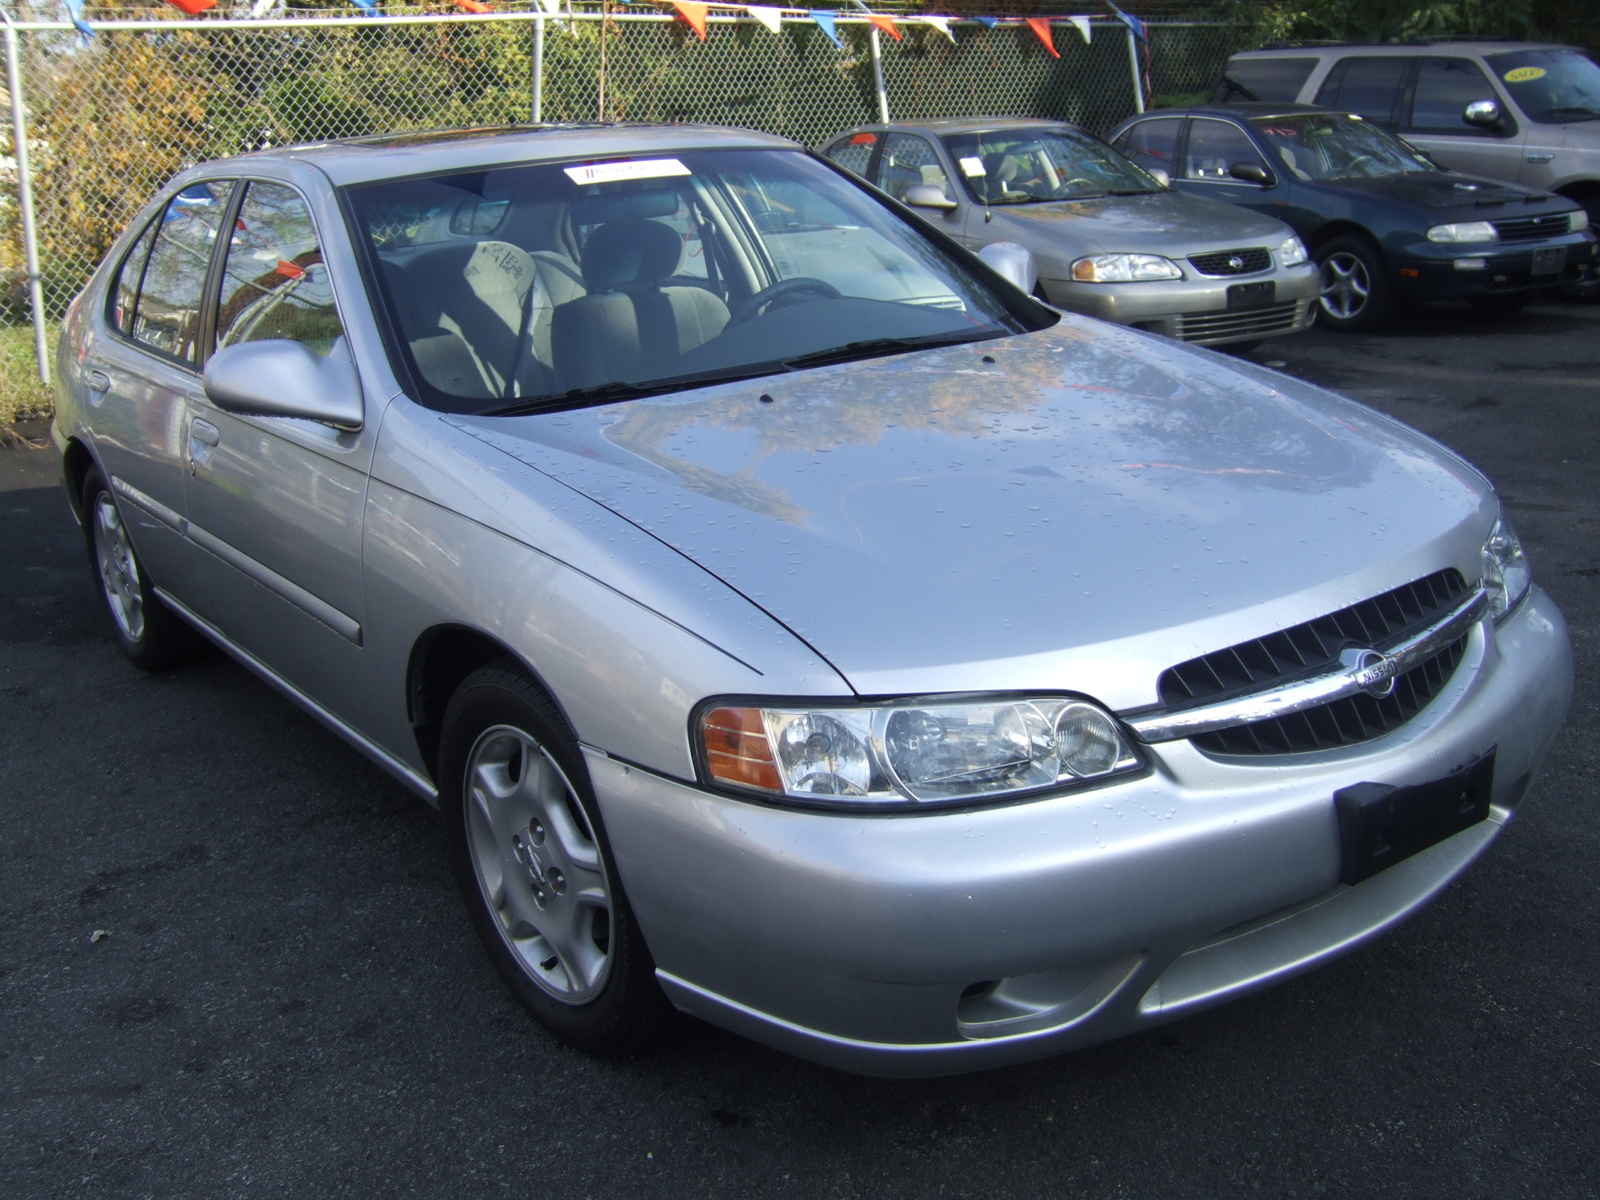 Picture of 2001 Nissan Altima GXE, exterior